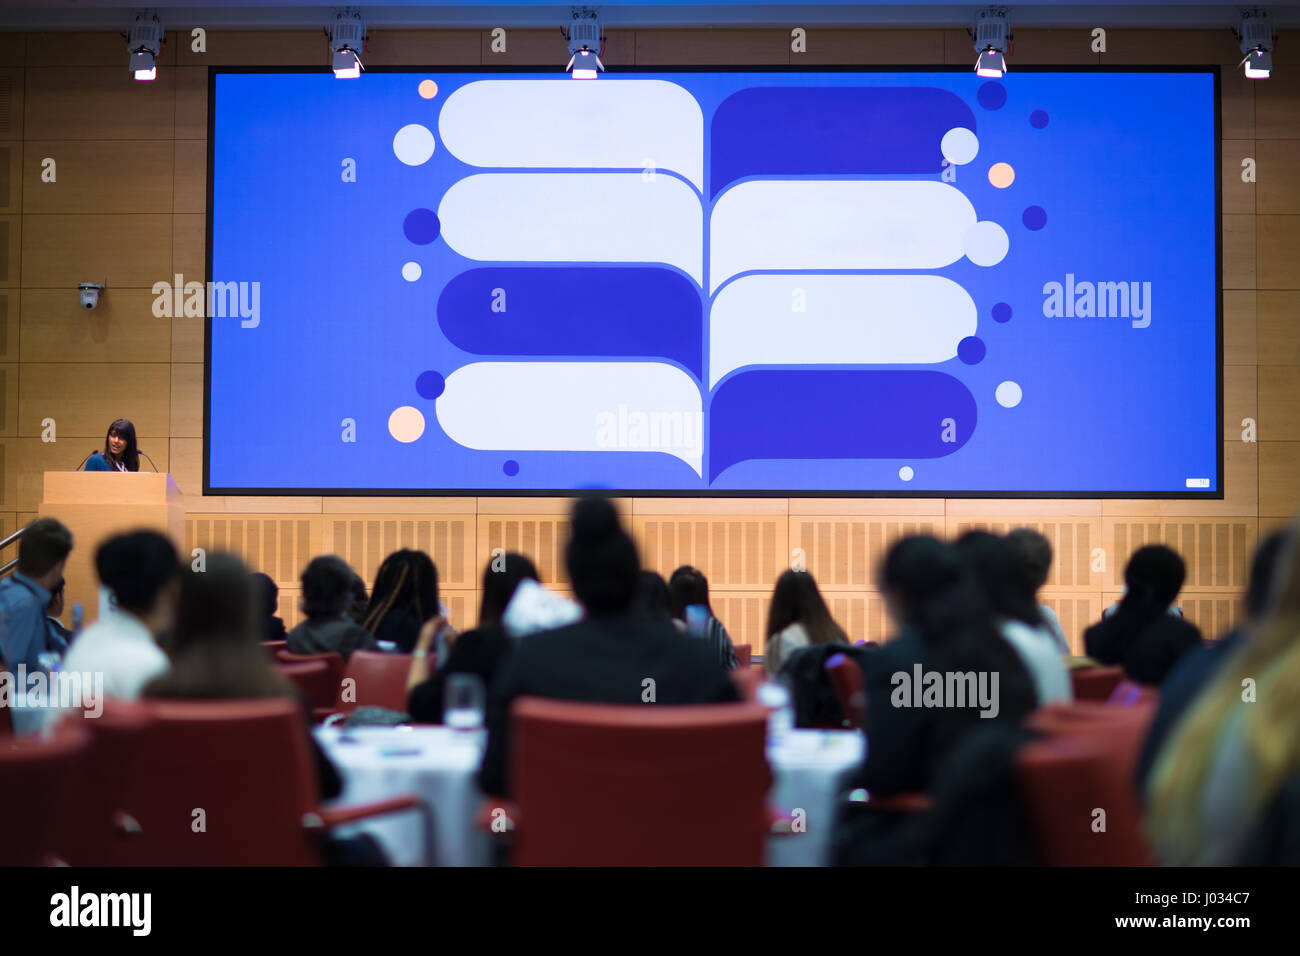 A large presentation screen facing an audience during an event - Stock Image